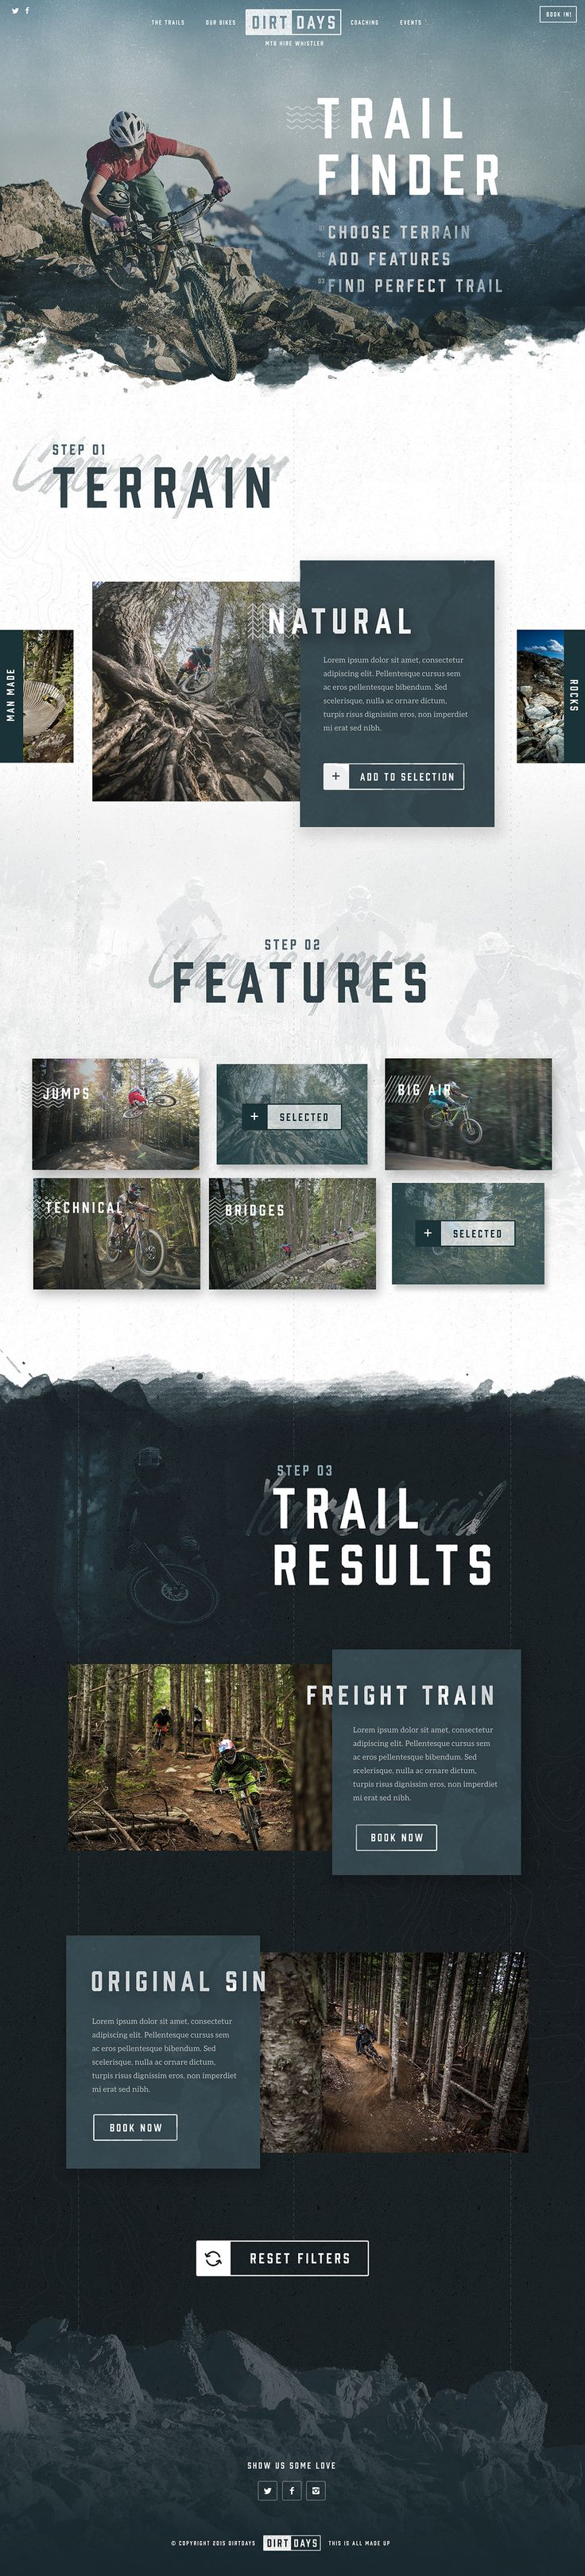 A conceptual web design project I created for a feature in Net Magazine. The brief was to design a bike hire website for a fictional company in a location of my choice. I chose Whistler for it's stunning scenery and world renowned mountain biking trails.